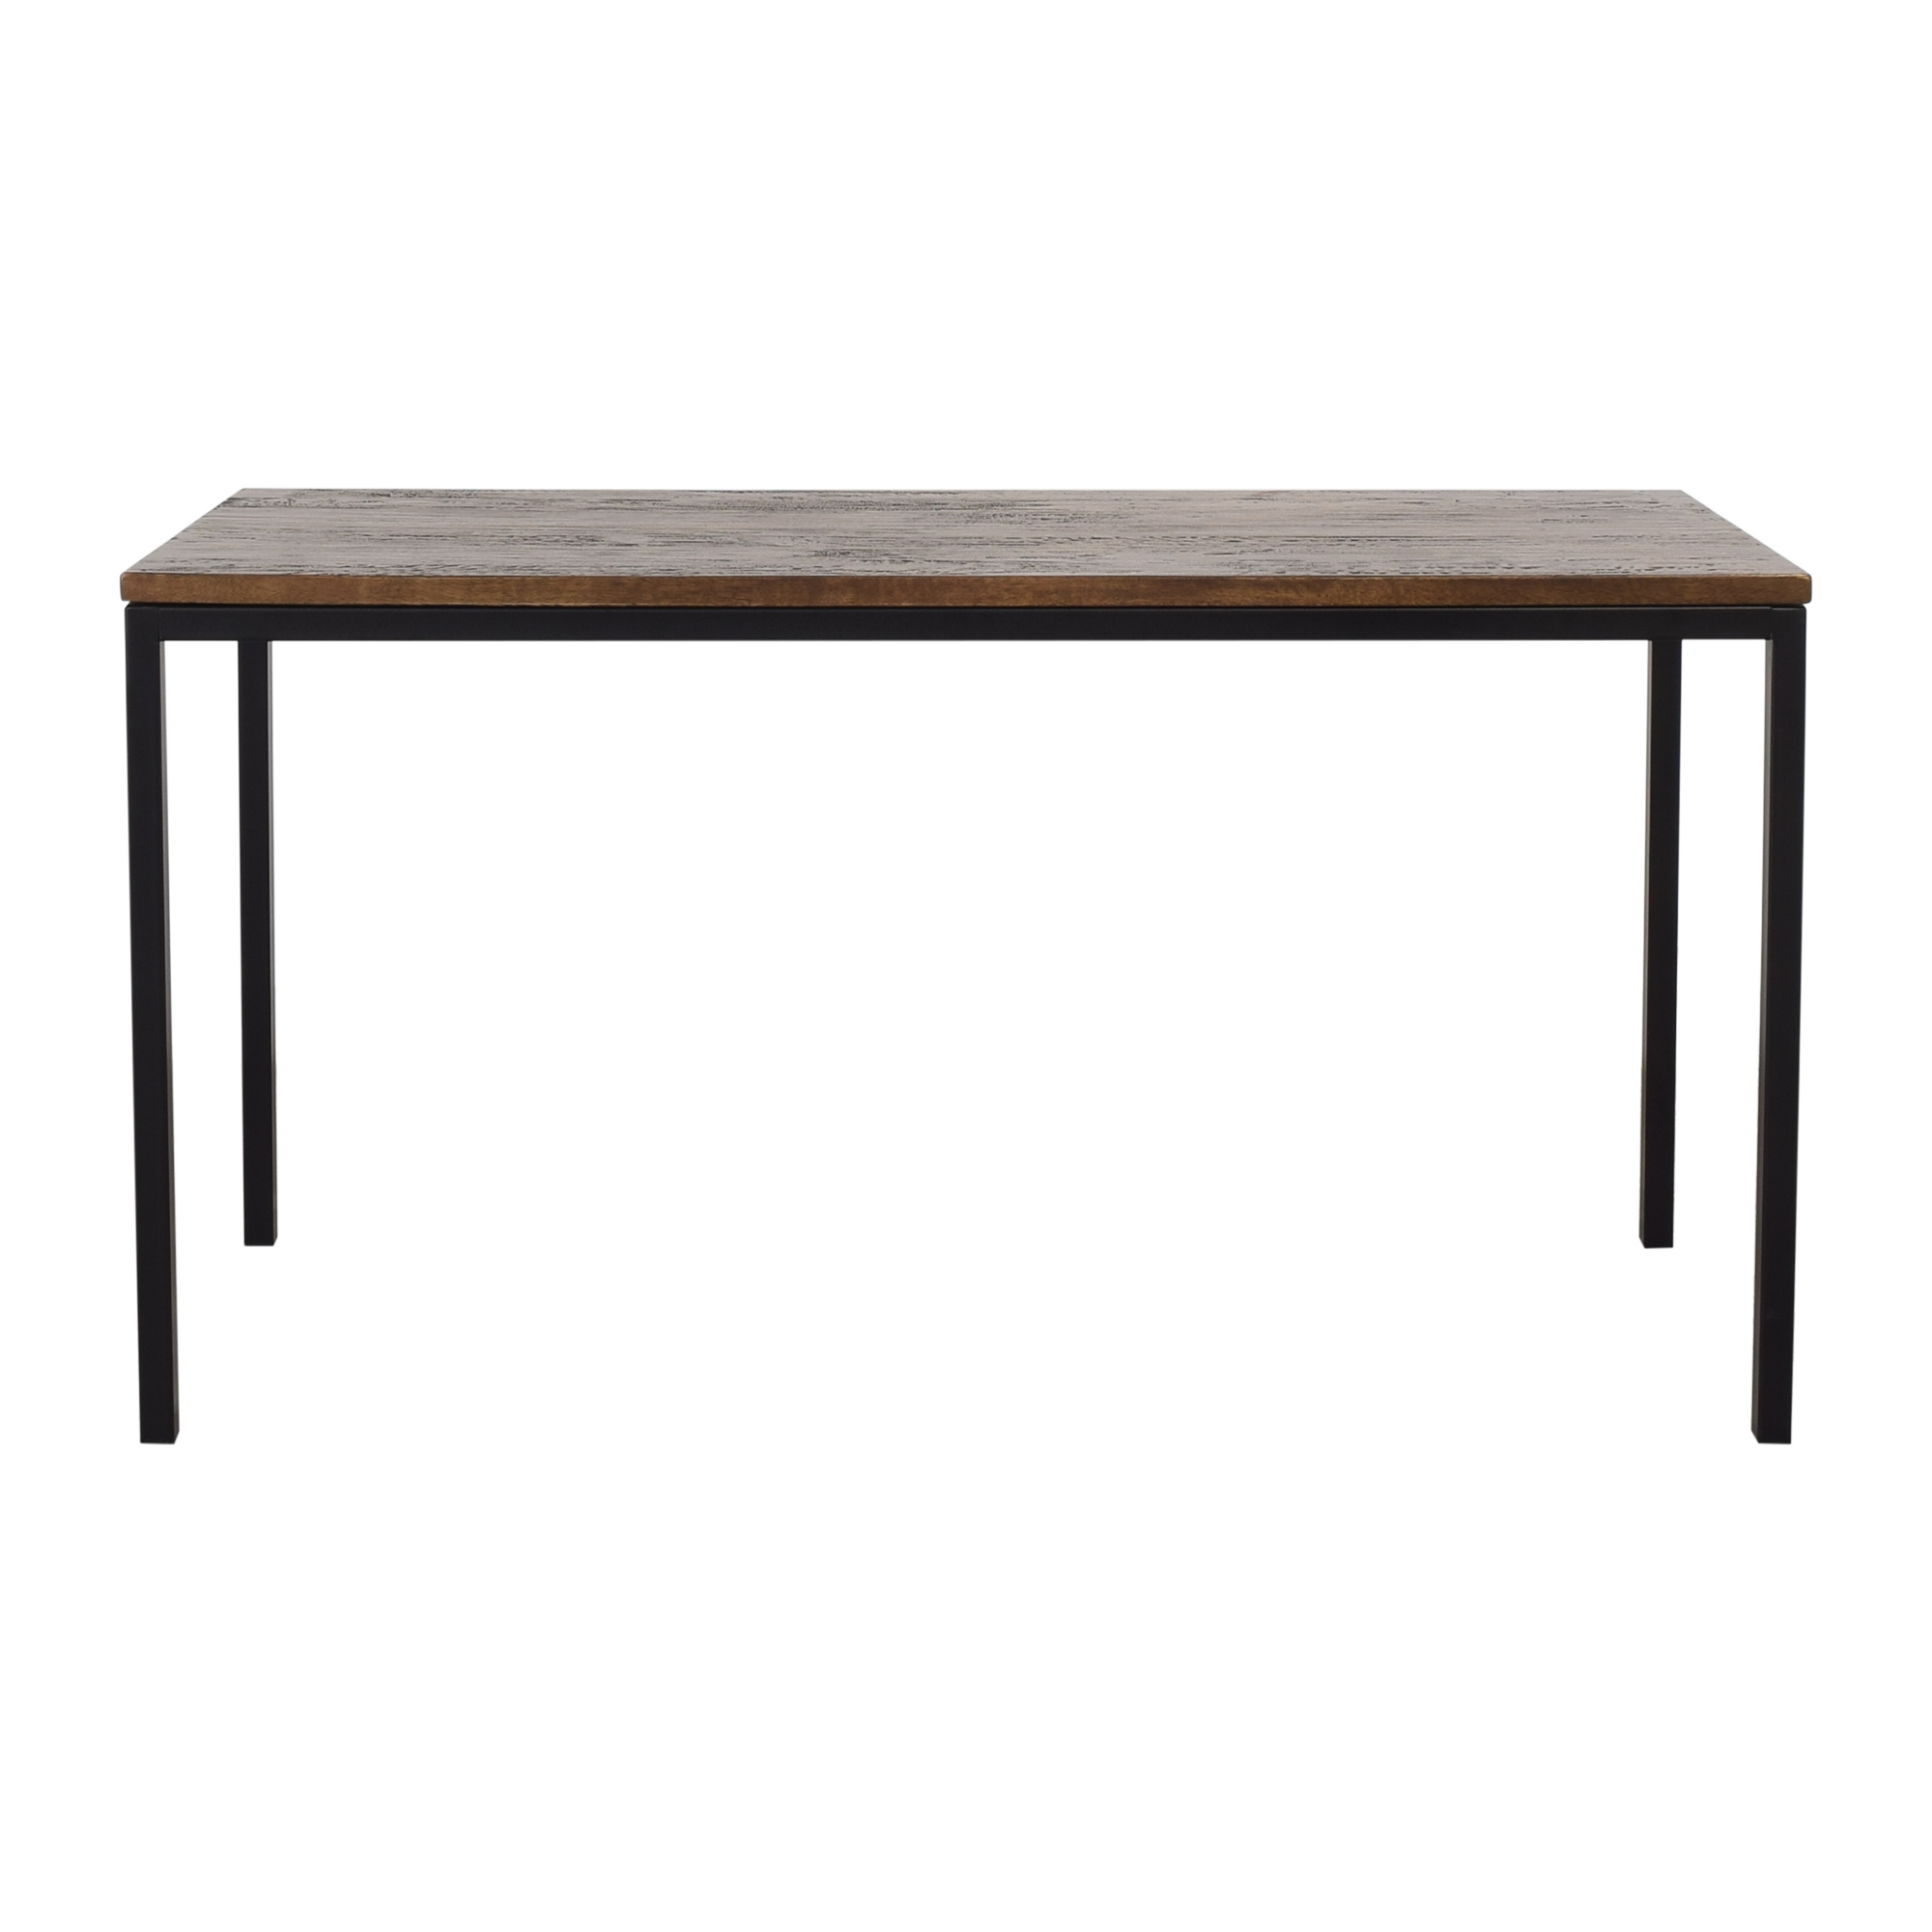 Arhaus Arhaus Palmer Dining Table discount